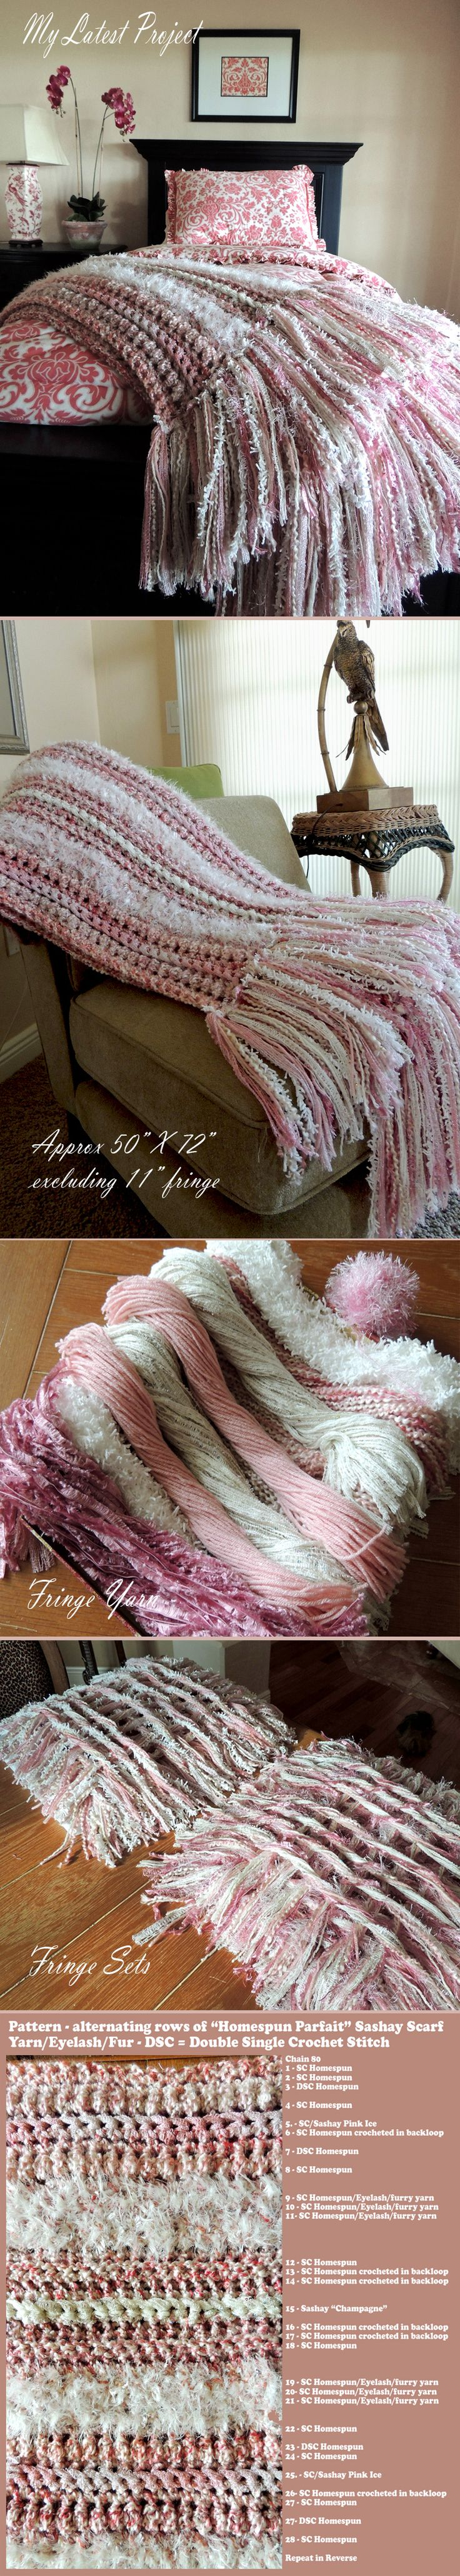 393 best crochet blankets images on Pinterest | Hand crafts ...